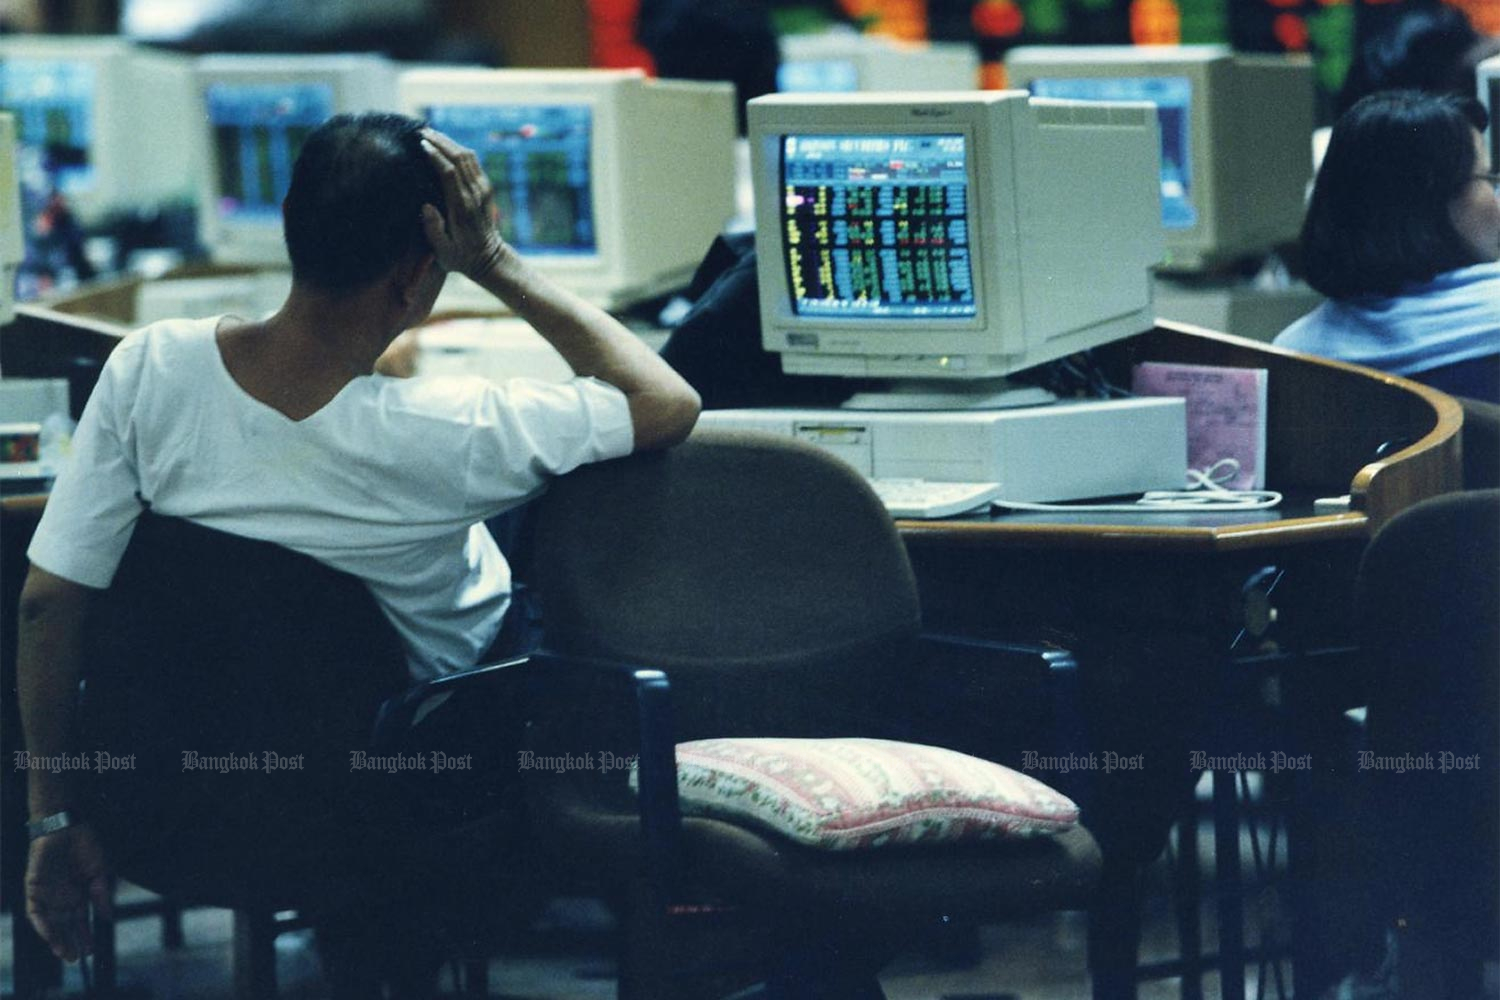 In this 1997 file photo, an investor reacts to market news as a number of finance companies closed down during the economic crisis. (Bangkok Post photo)